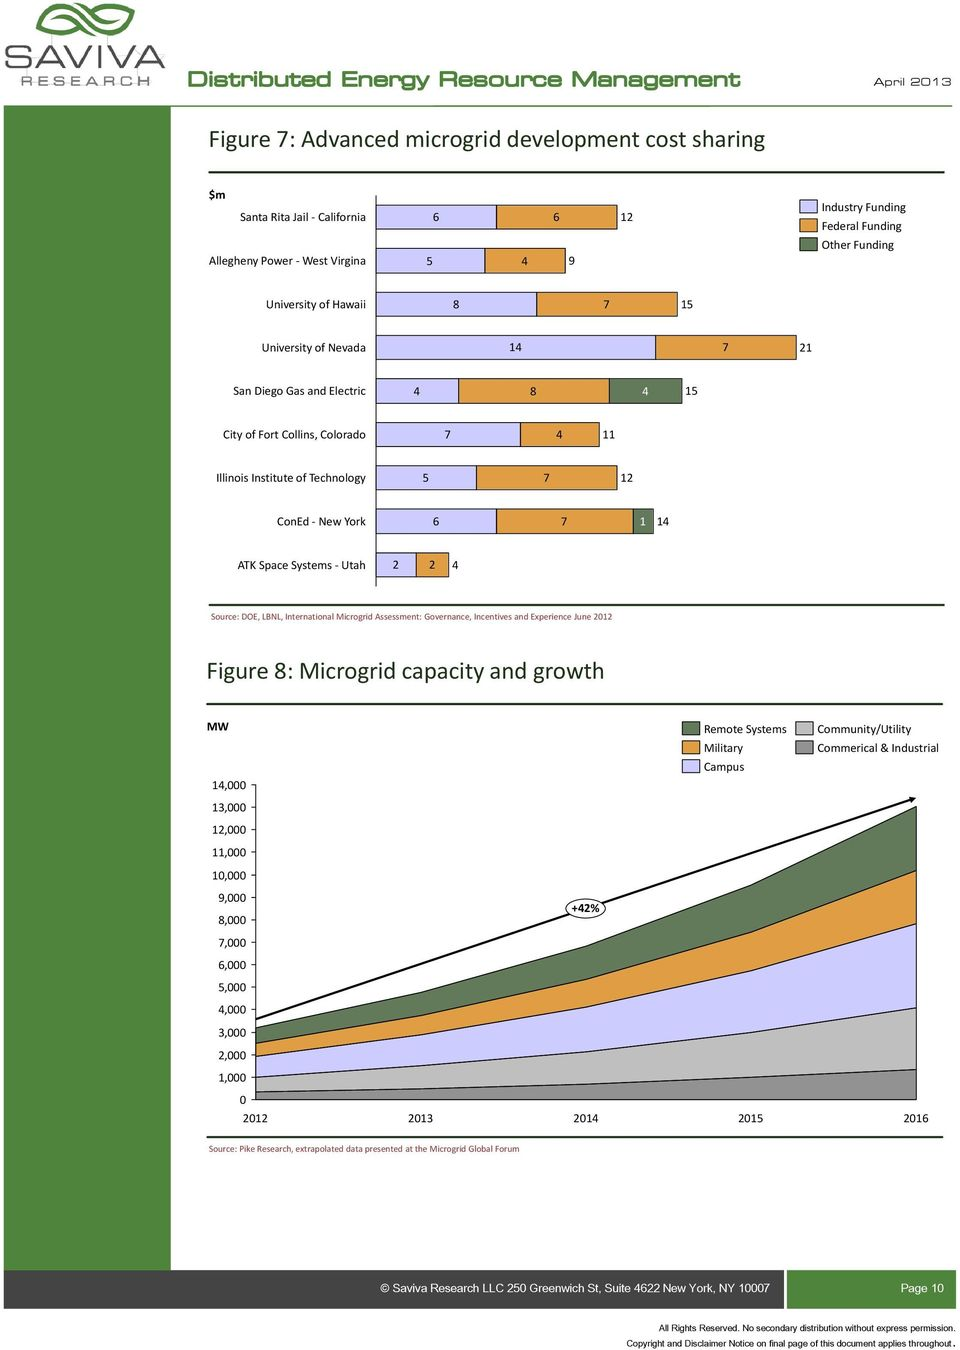 2 2 4 Source: DOE, LBNL, International Microgrid Assessment: Governance, Incentives and Experience June 2012 Figure 8: Microgrid capacity and growth MW 14,000 13,000 12,000 11,000 10,000 Remote